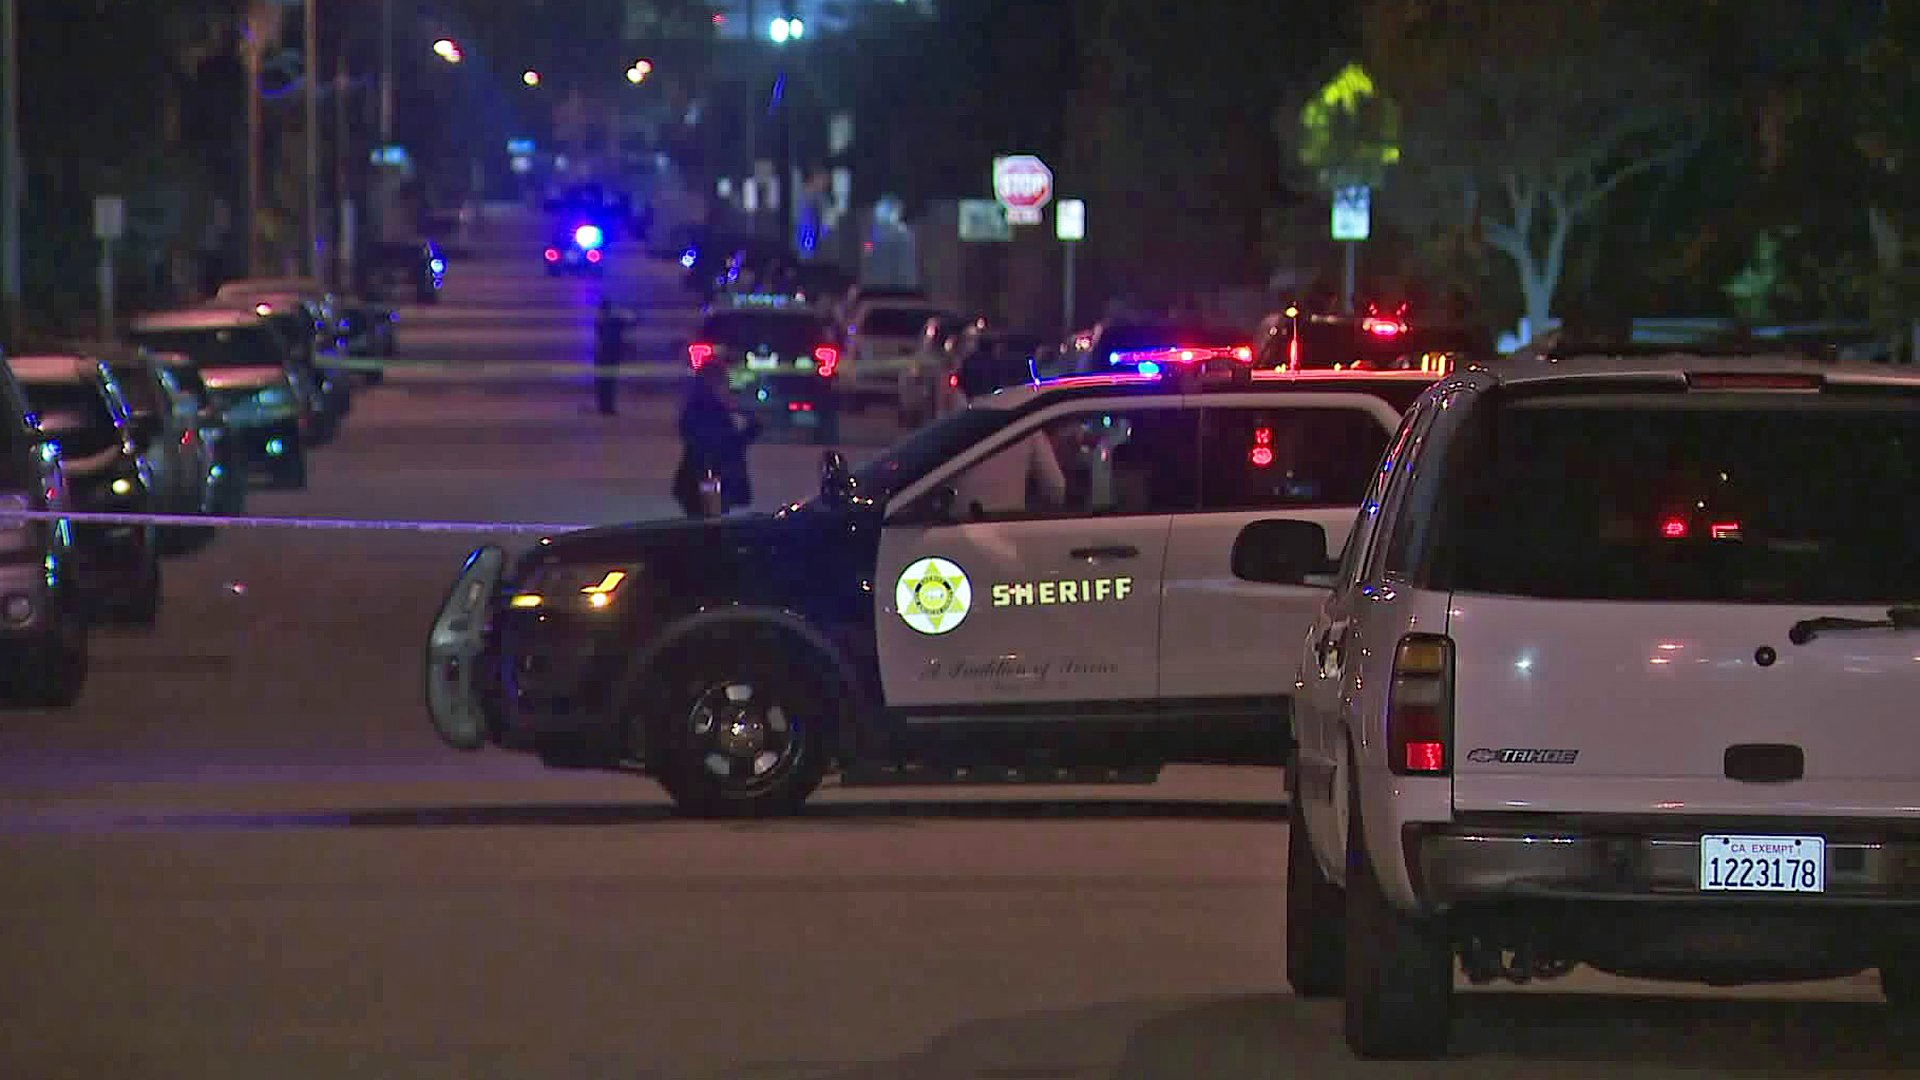 Authorities investigate a fatal shooting in the unincorporated East Los Angeles area on Jan. 6, 2020. (Credit: KTLA)